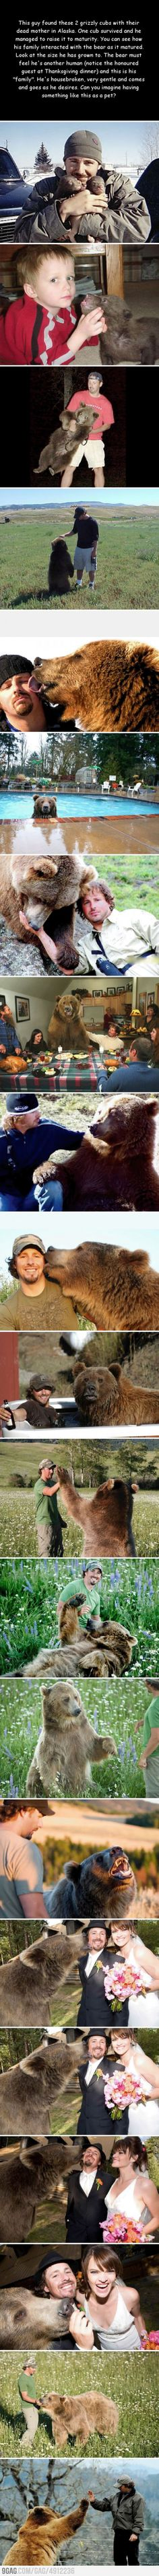 awww i'm literally crying looking at this.. i'm such a sucker for animals..